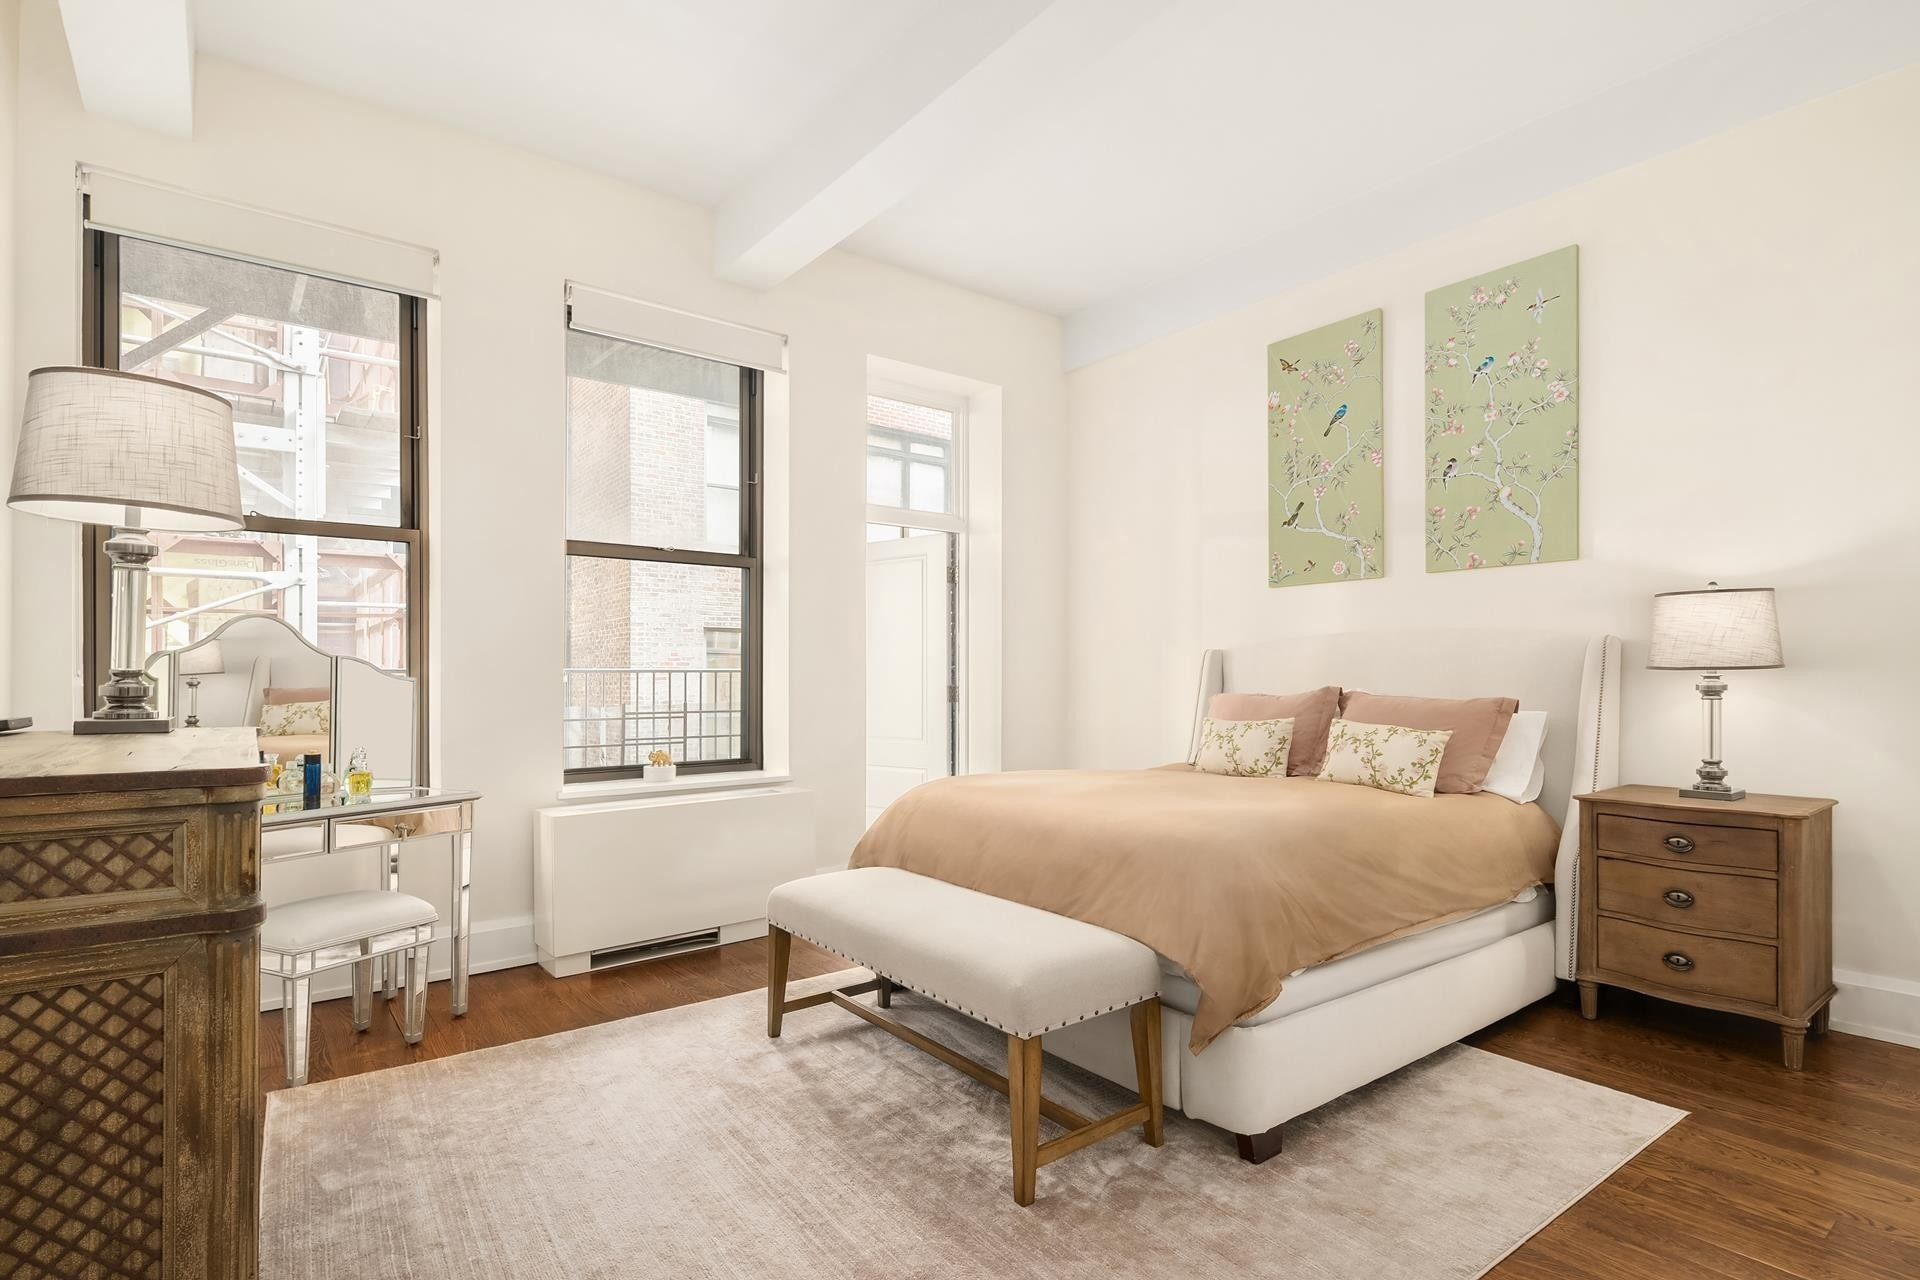 4. Condominiums for Sale at The Parkwood, 31 E 28TH ST , 9E NoMad, New York, NY 10016